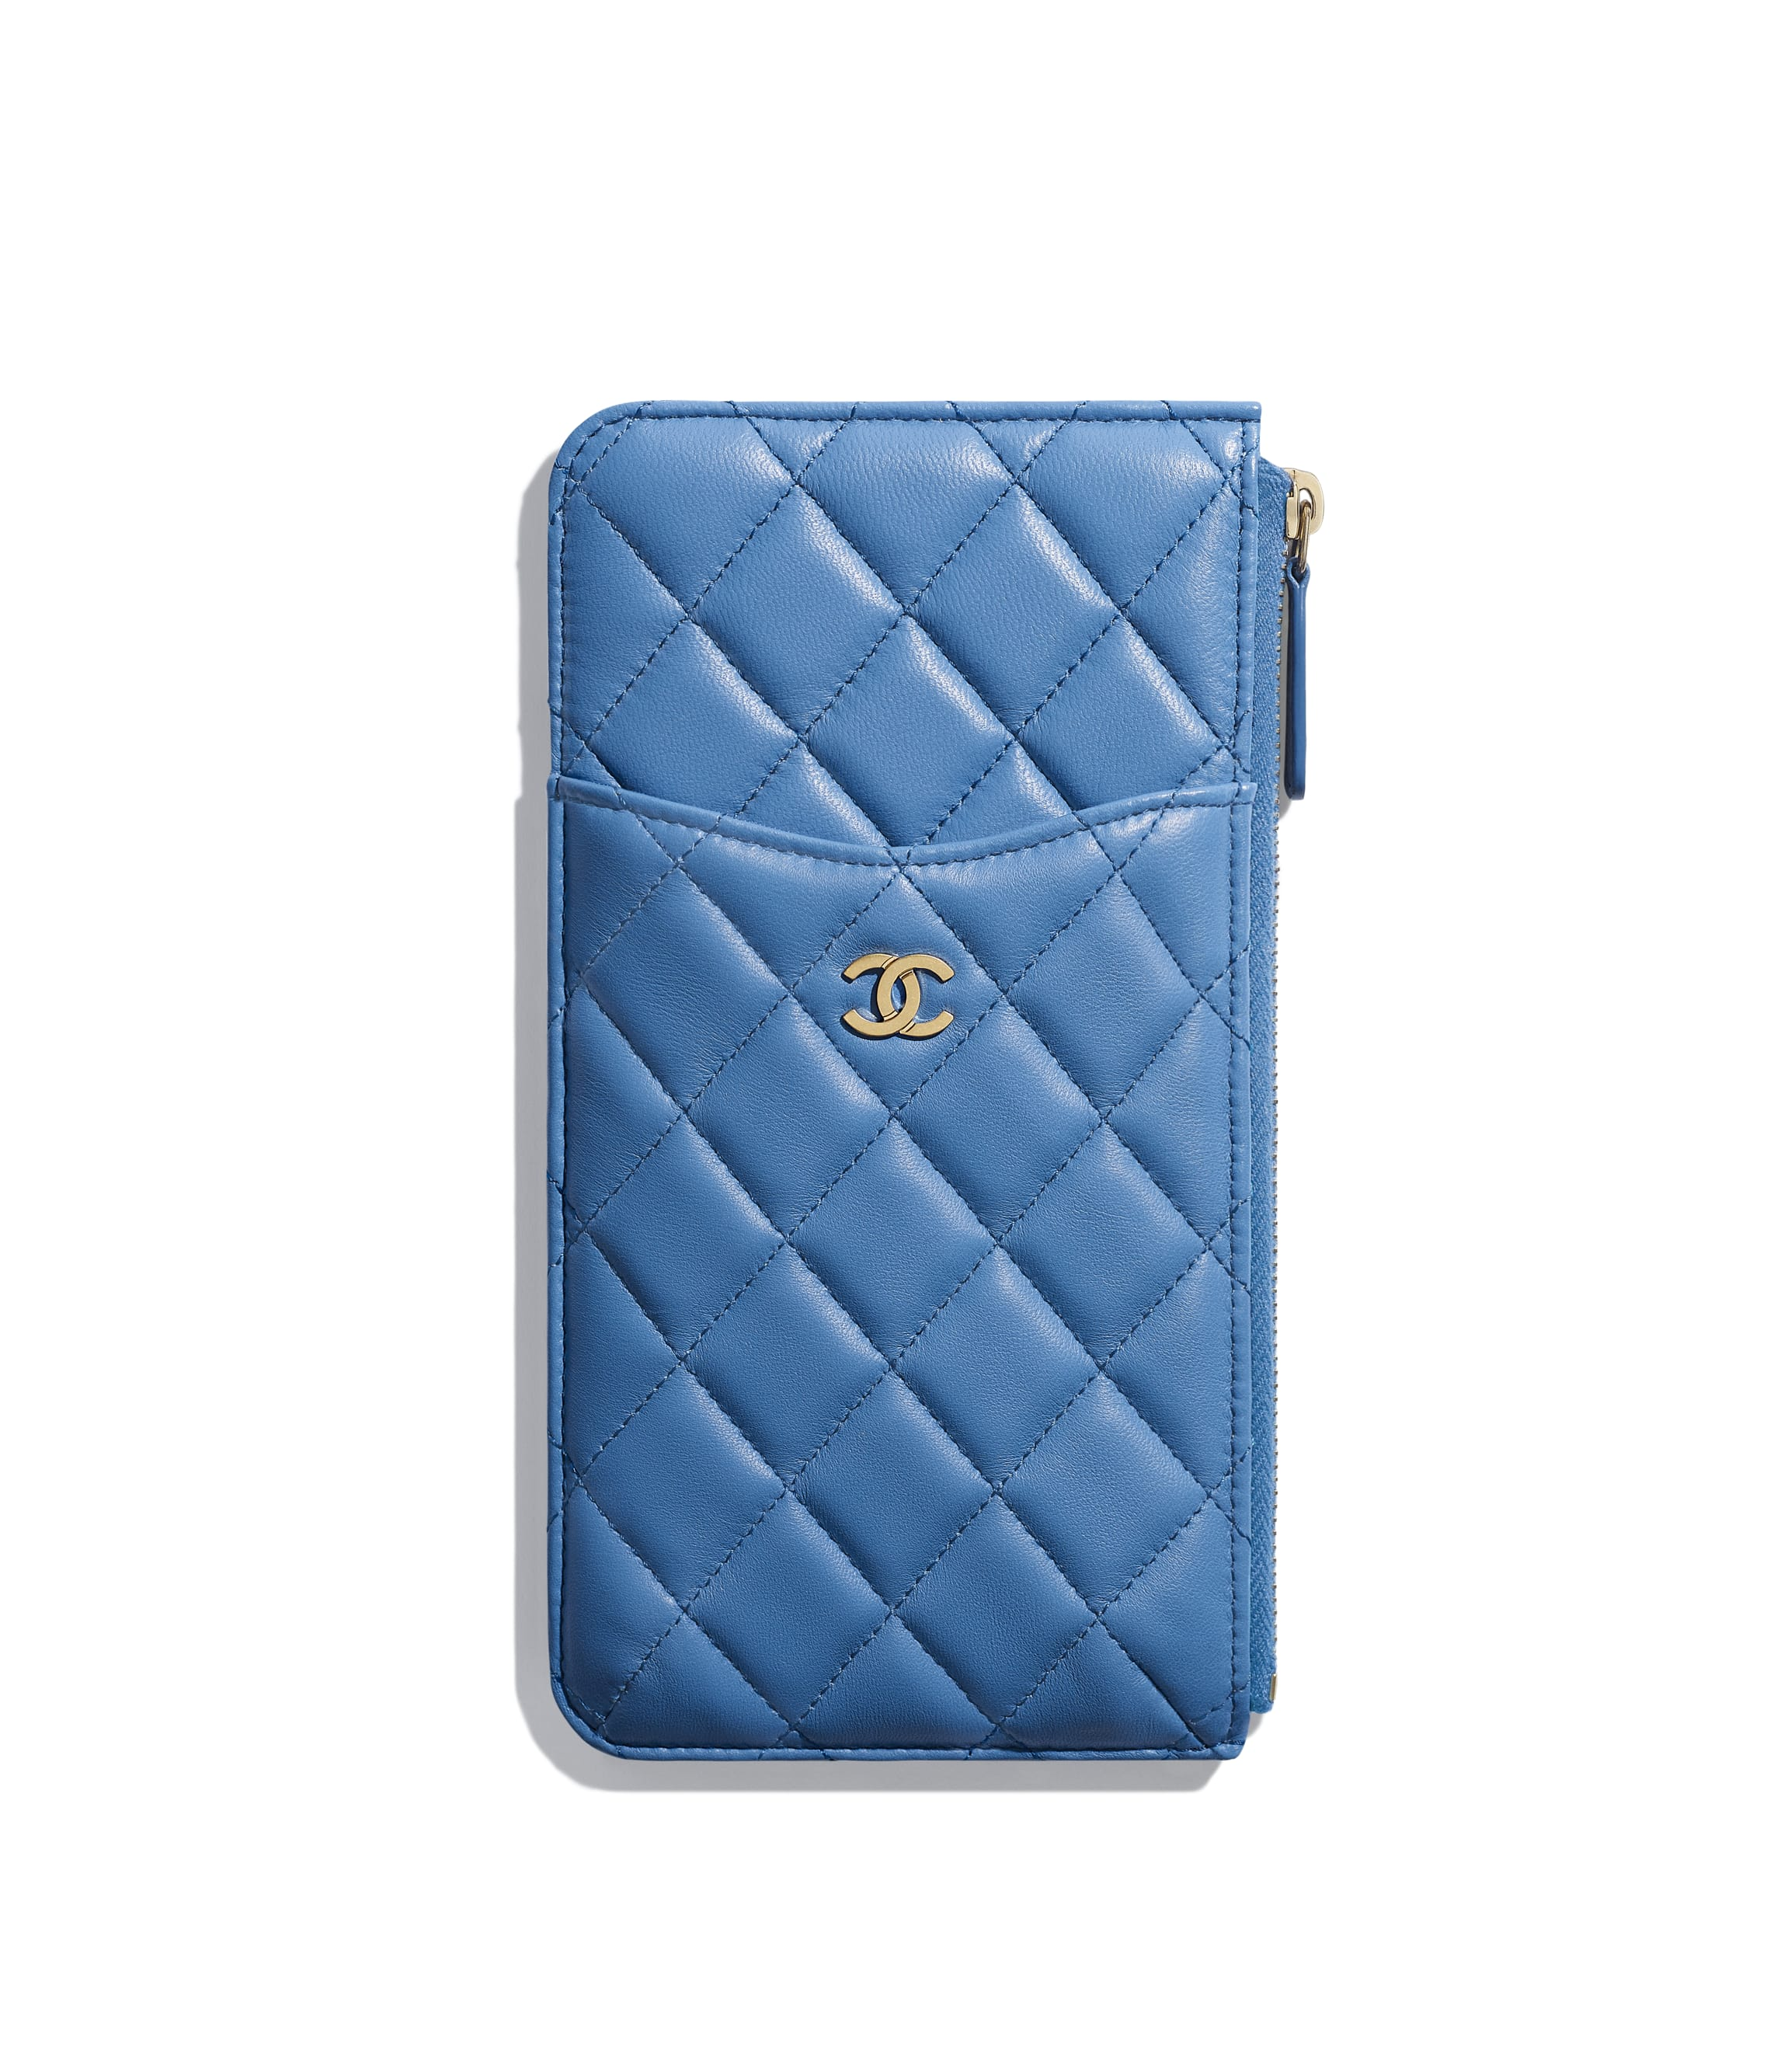 8a0adb499aceec Classic Pouch for iPhone, lambskin, blue - CHANEL